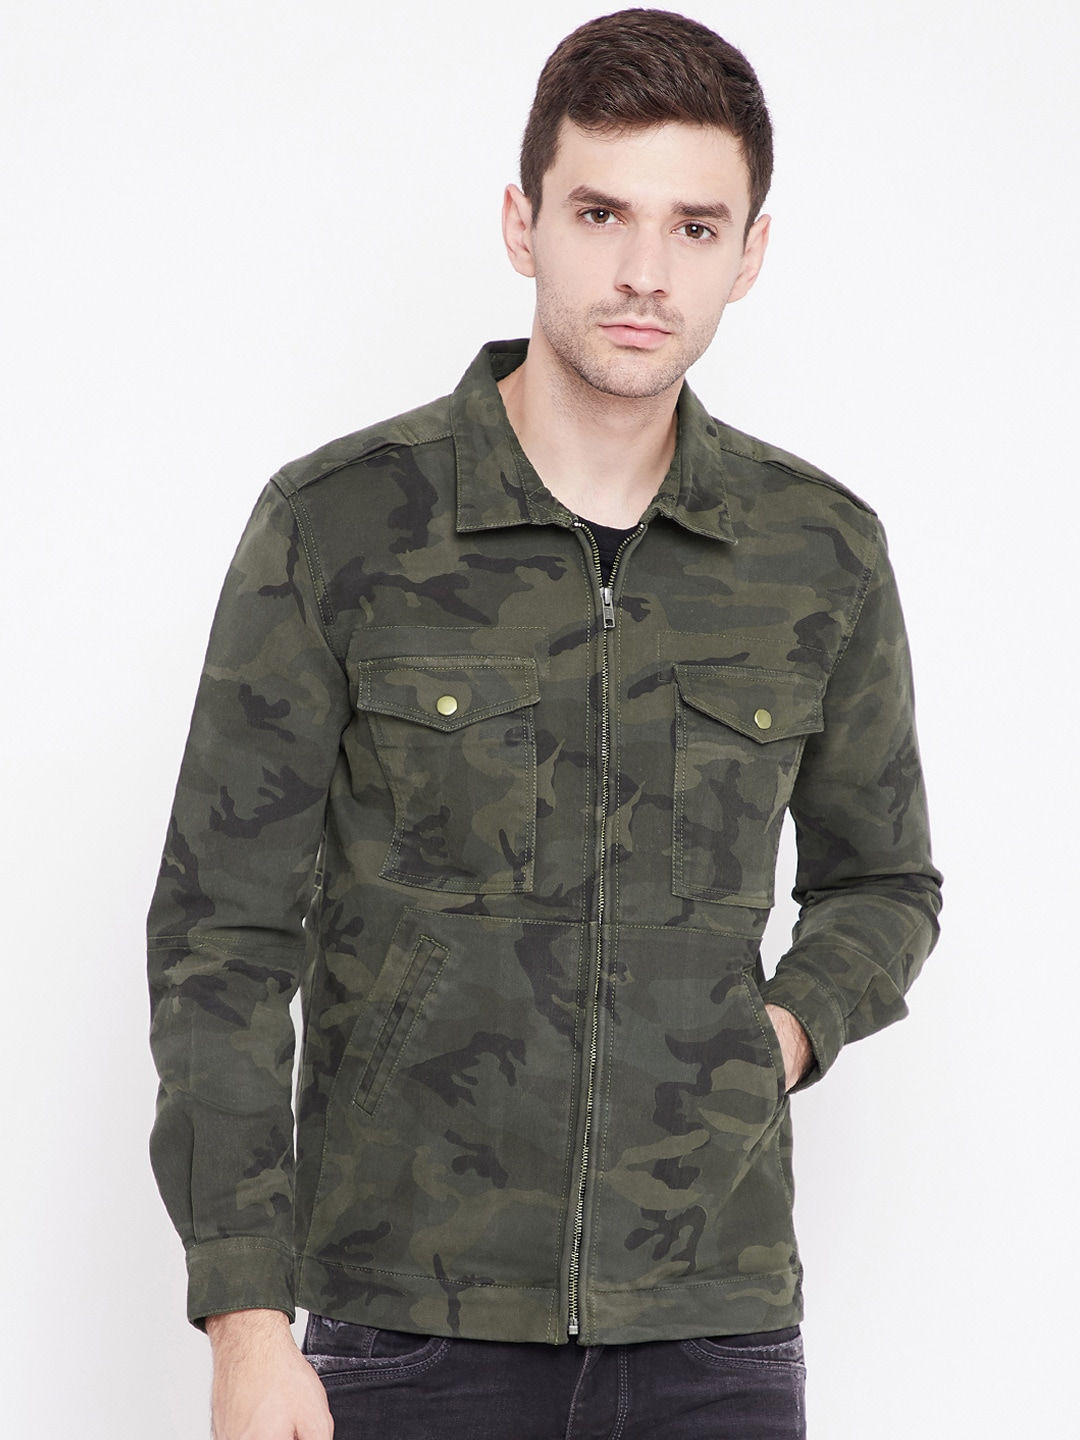 602b54c5b0692 Buy Wildcraft Olive Green Camouflage Print Utility Cao Utility ...